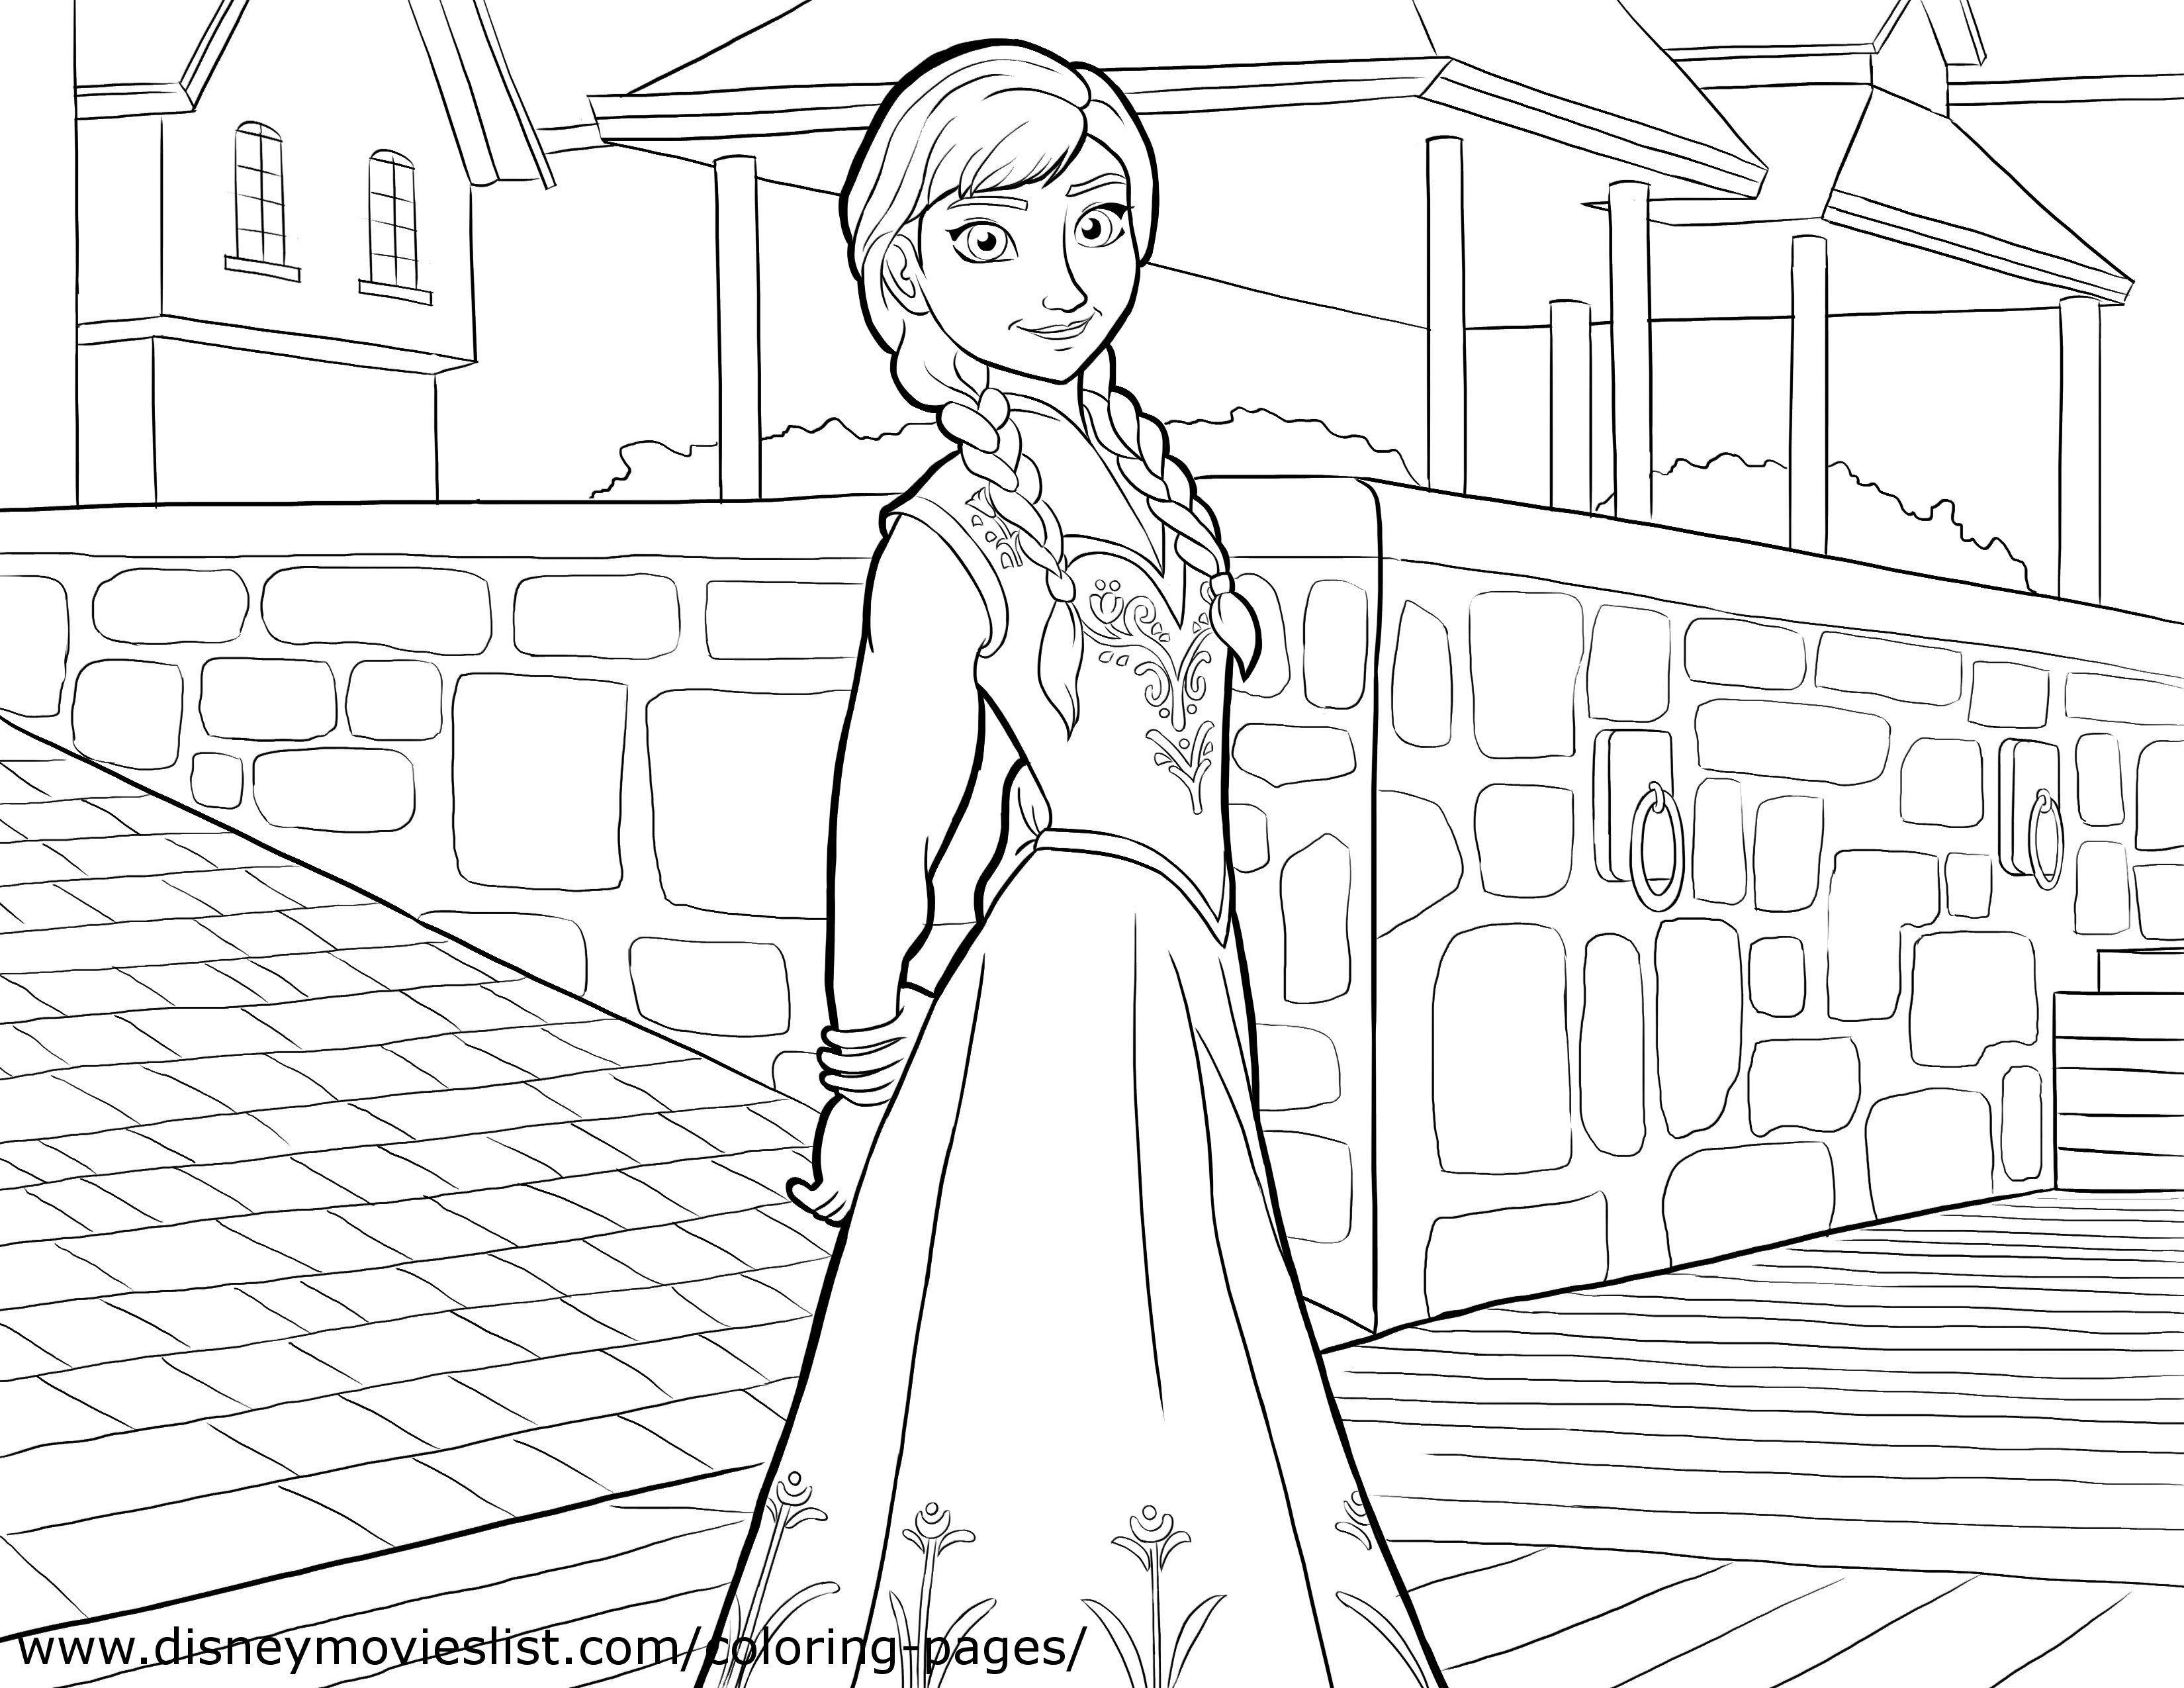 Frozen Images Coloring Pages HD Wallpaper And Background Photos